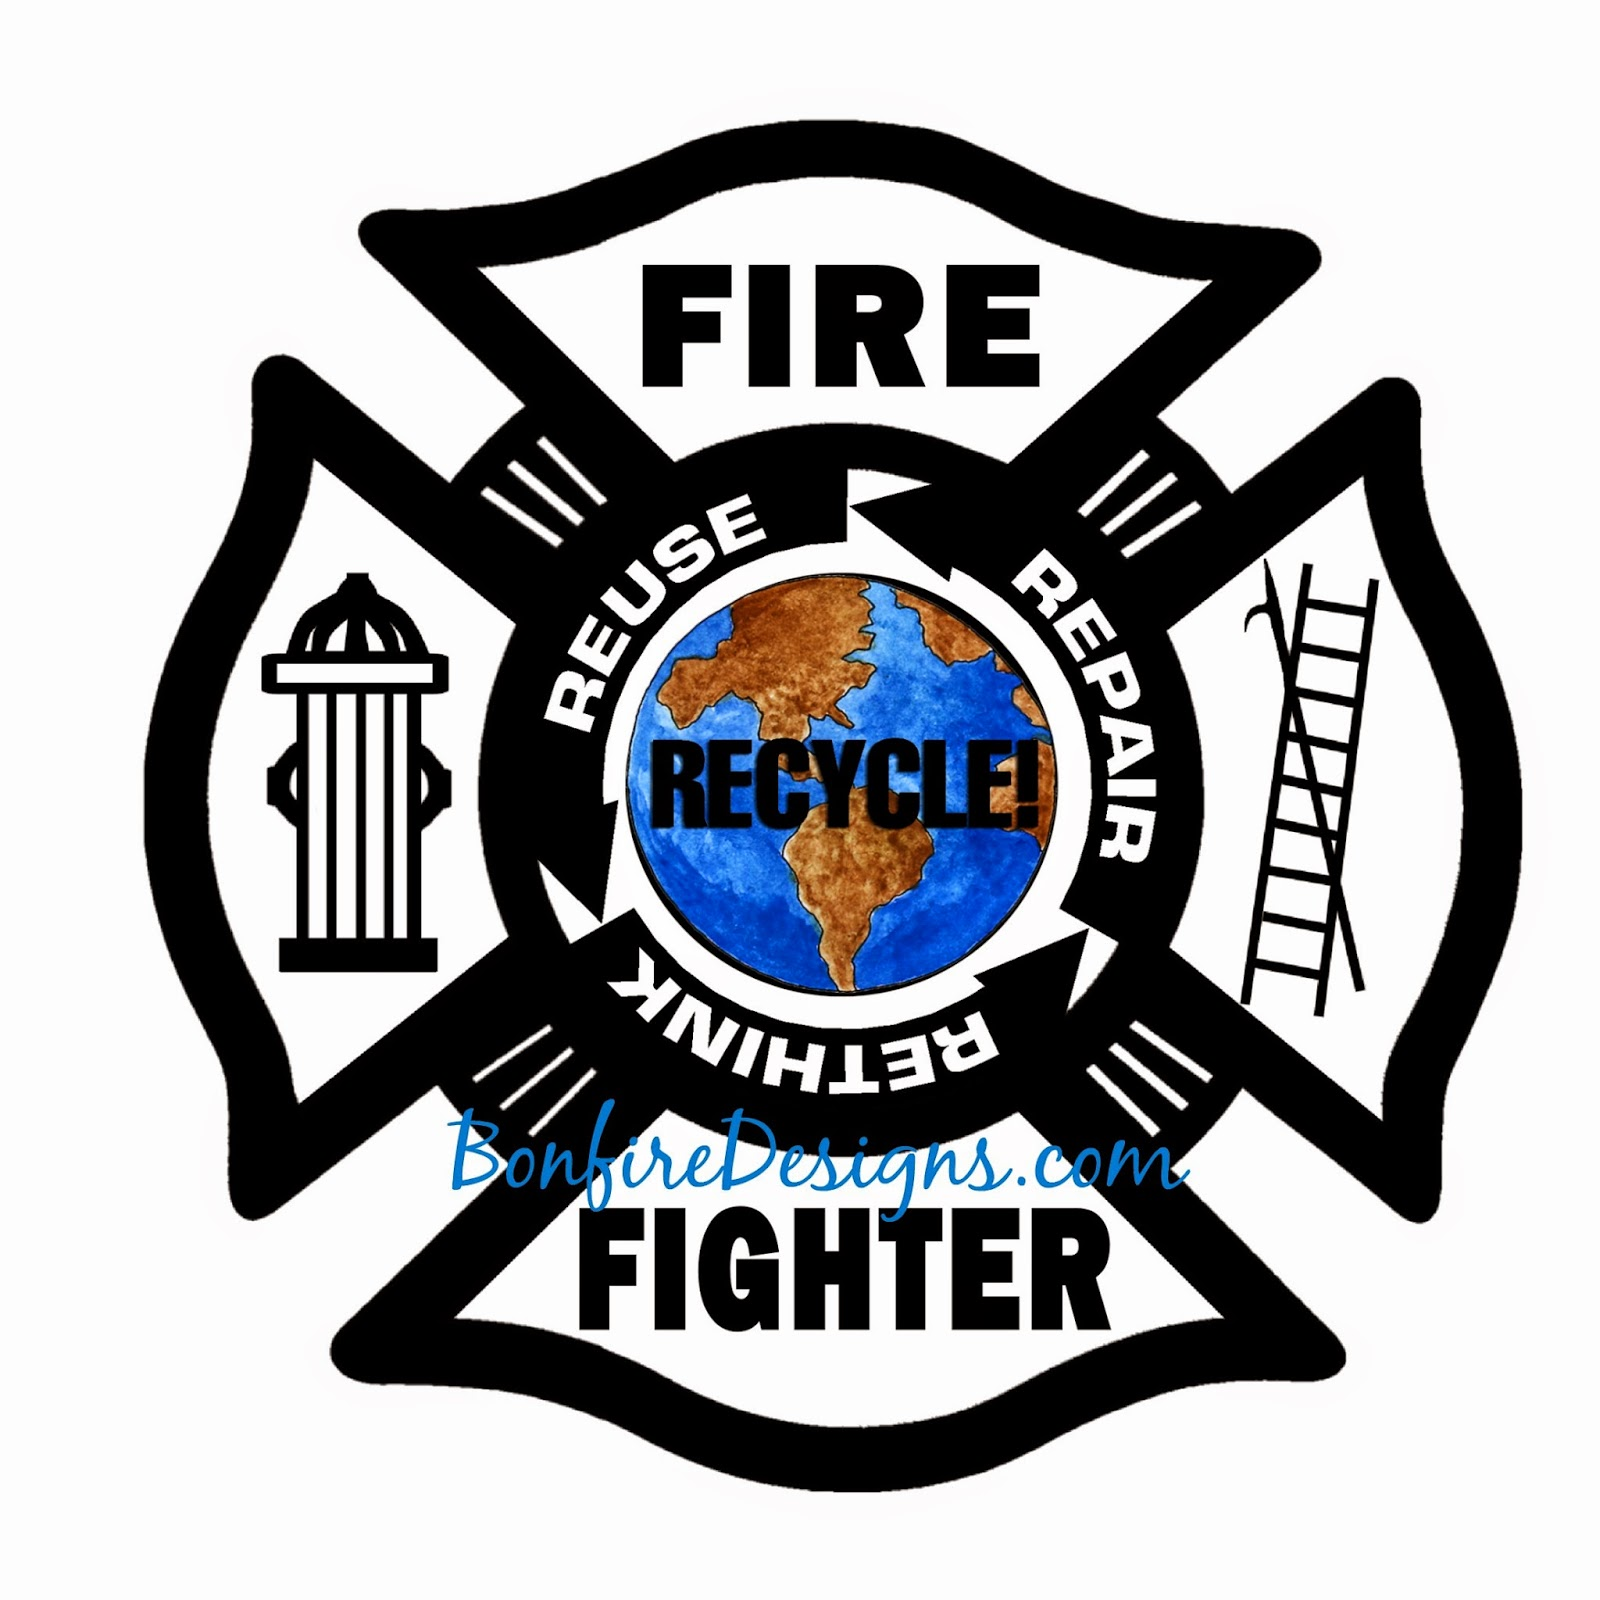 Firefighter Recycle Green Energy Logo Shirts and Gift Ideas